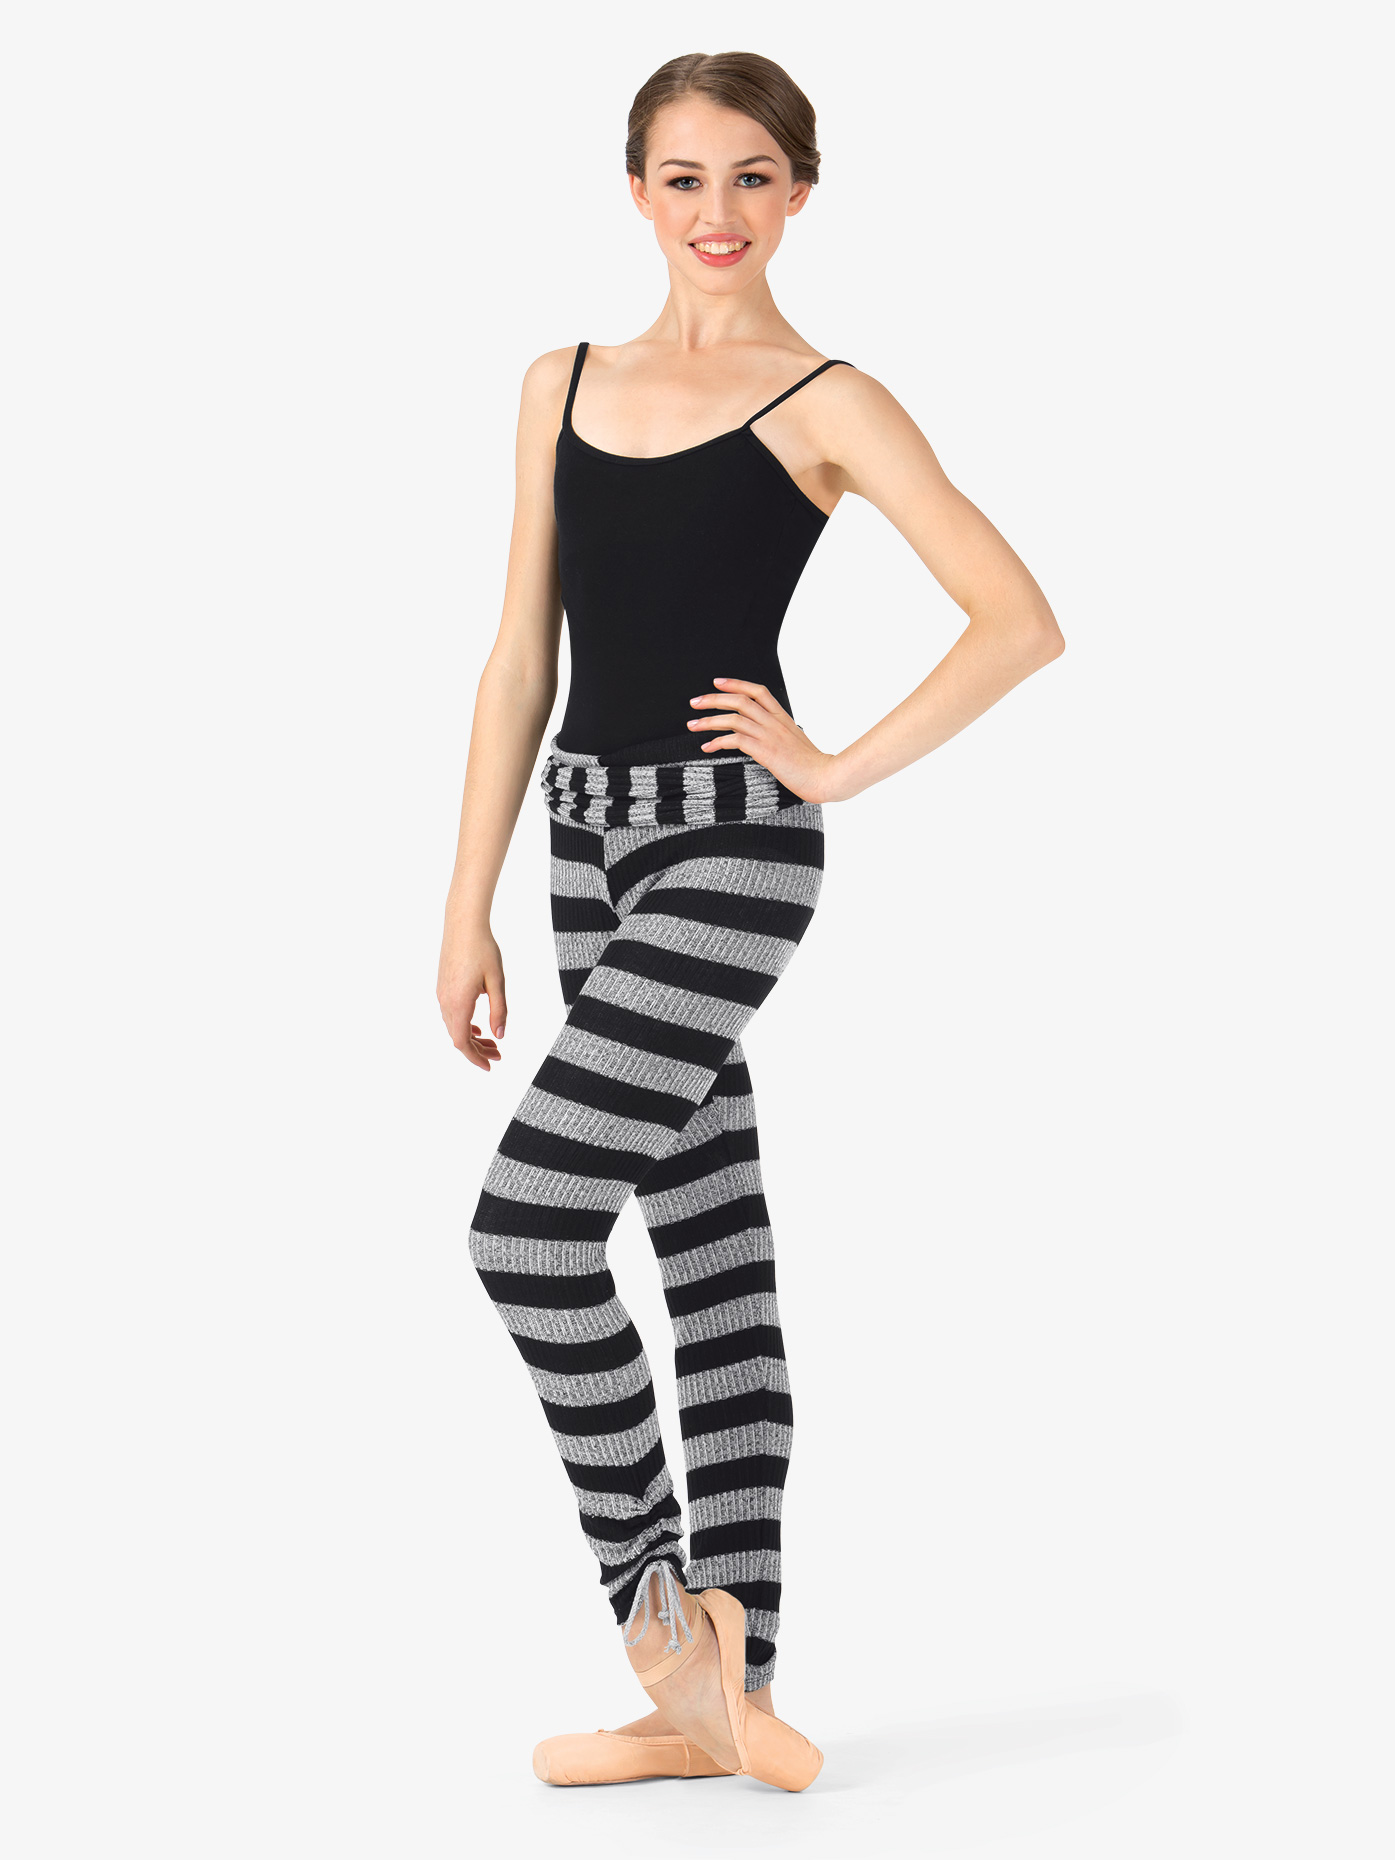 Body Wrappers Adult Striped Knit Warm Up Pants 5171